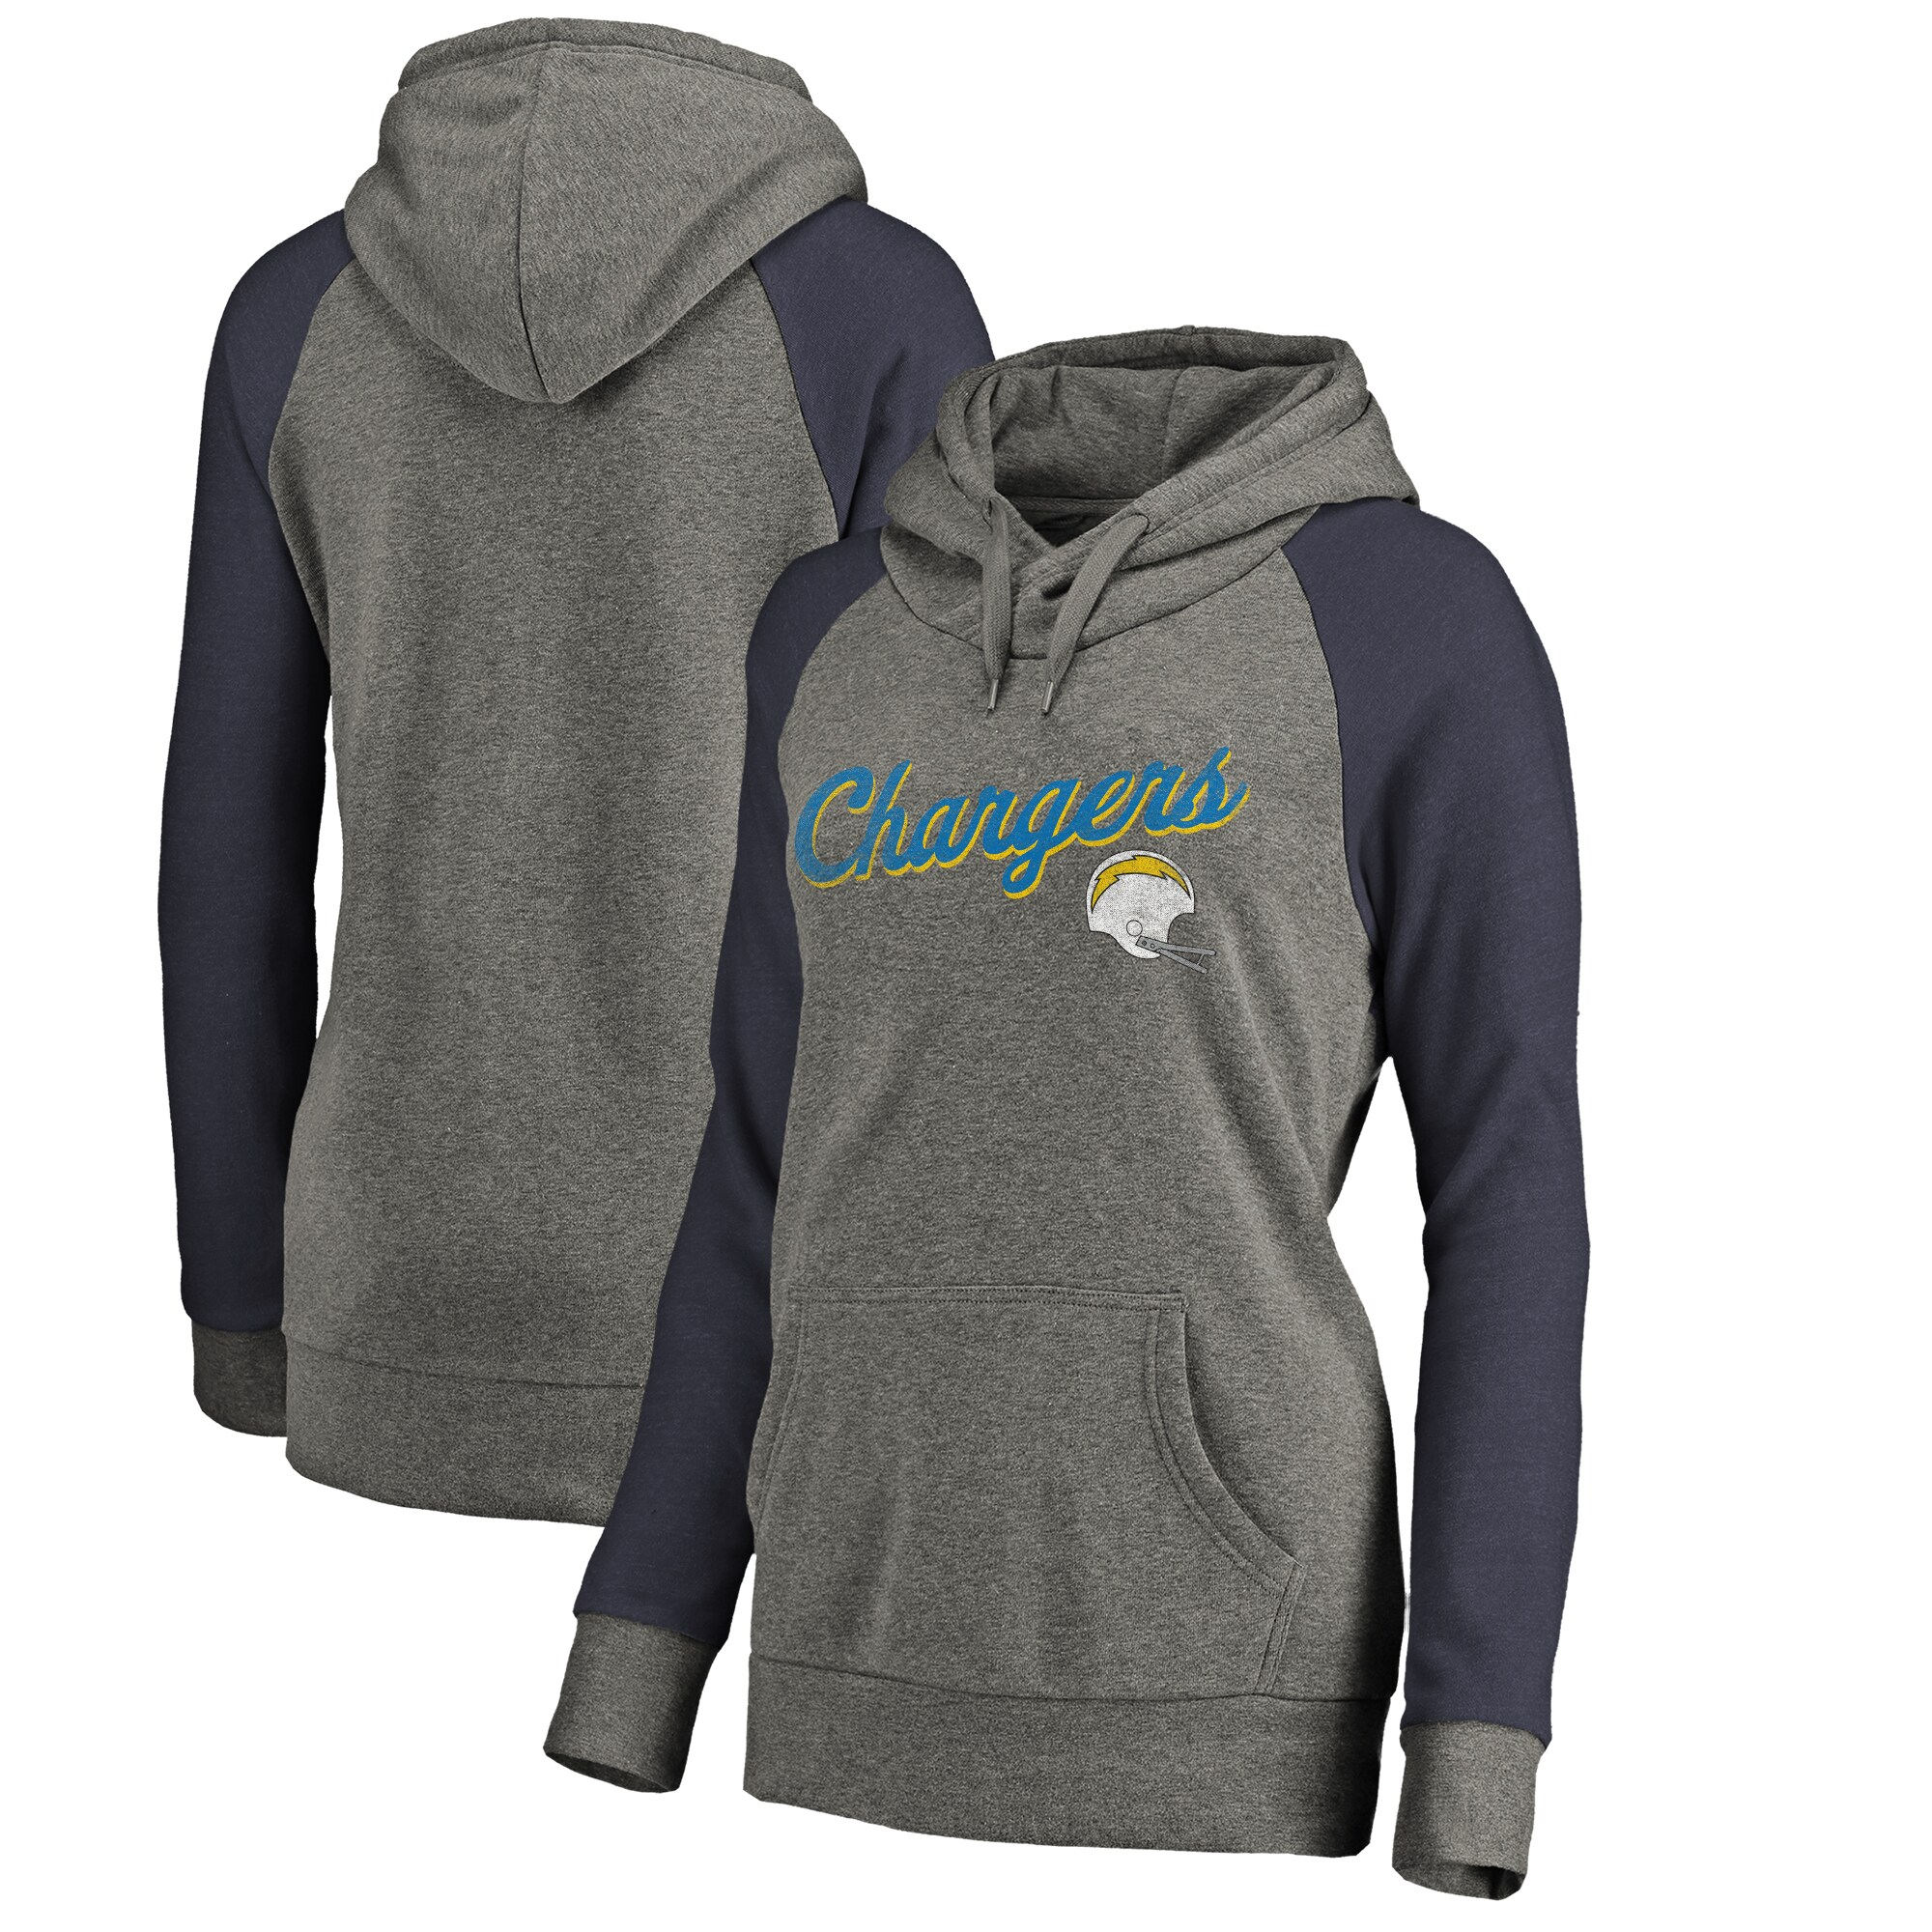 Los Angeles Chargers NFL Pro Line by Fanatics Branded Women's Timeless Collection Rising Script Tri-Blend Raglan Pullover Hoodie - Ash